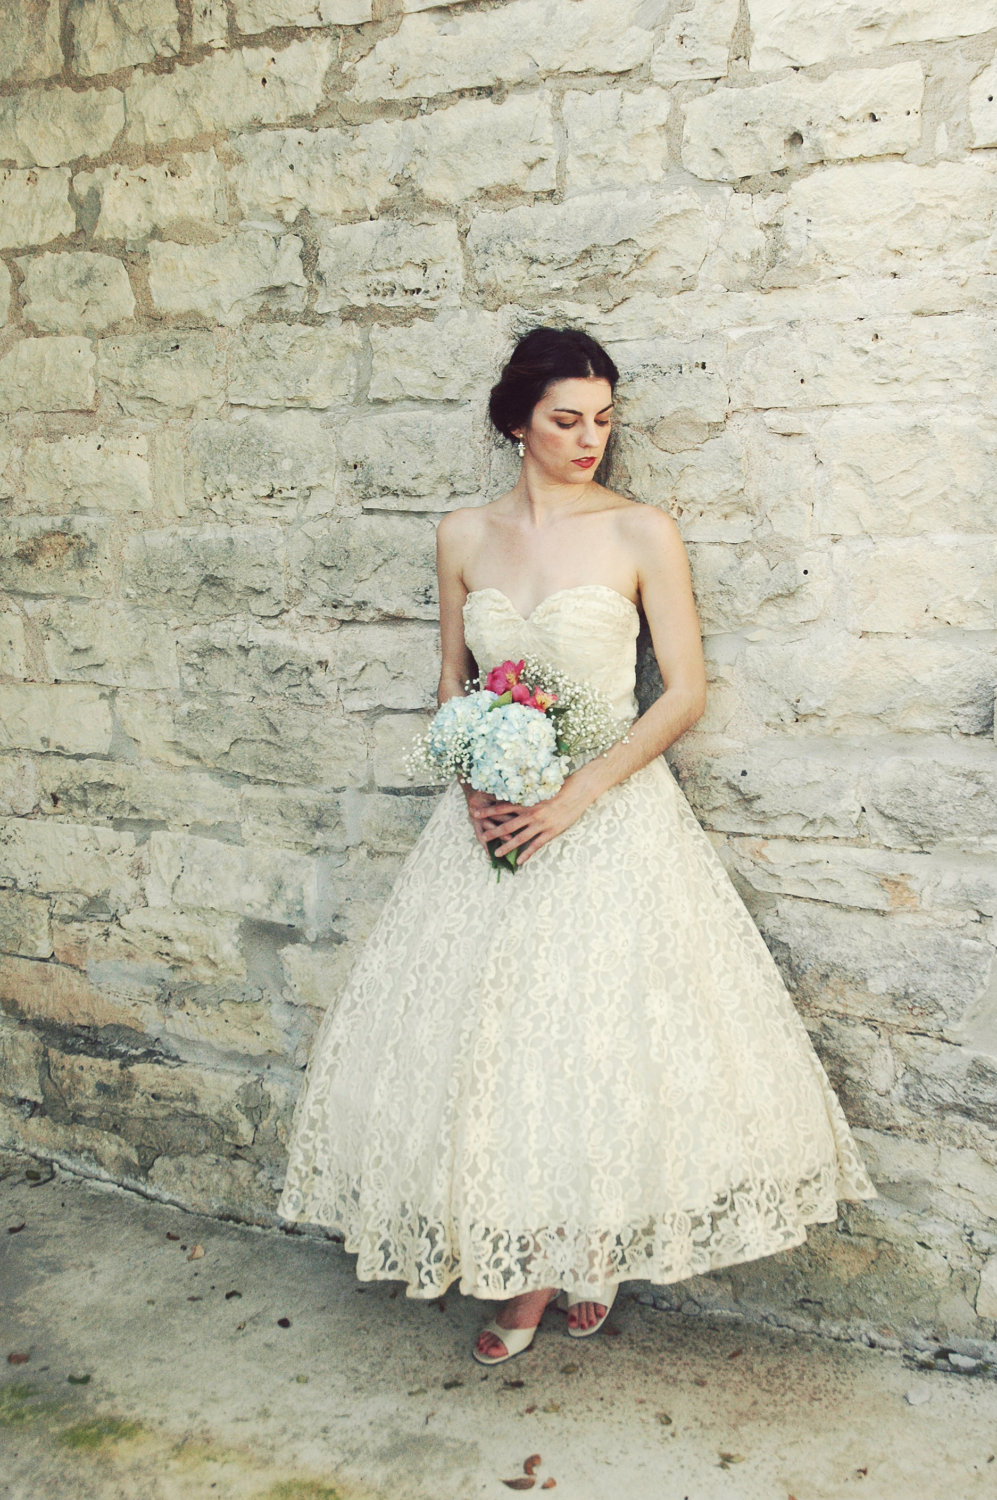 Vintage wedding dress bridal gown inspiration from etsy for Etsy dresses for weddings